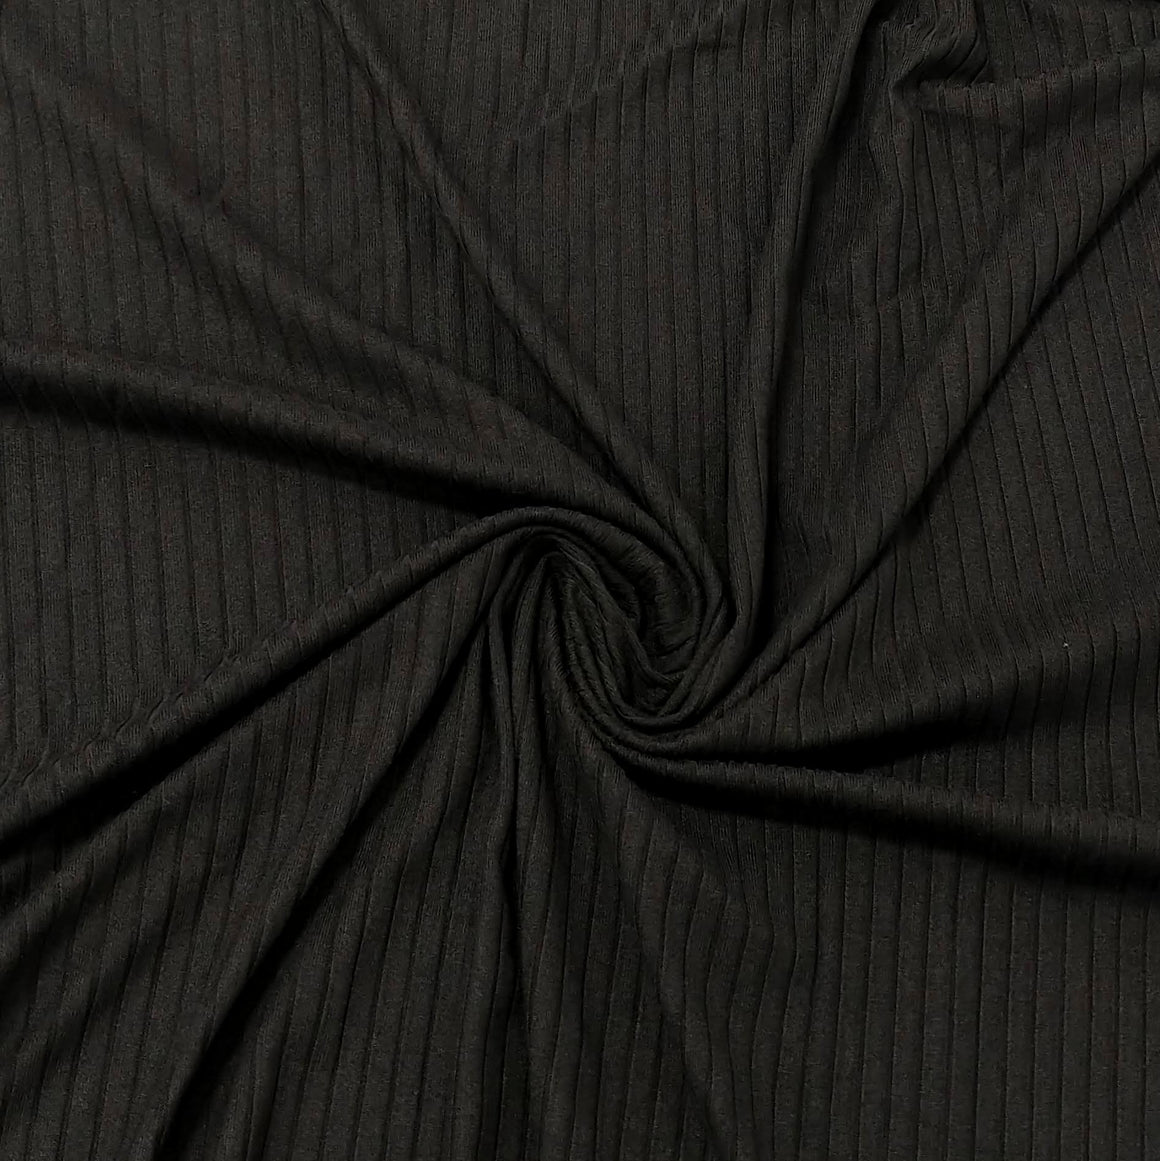 Solid Black Poly Spandex 4 Way Stretch 8x3 Rib Knit - Raspberry Creek Fabrics